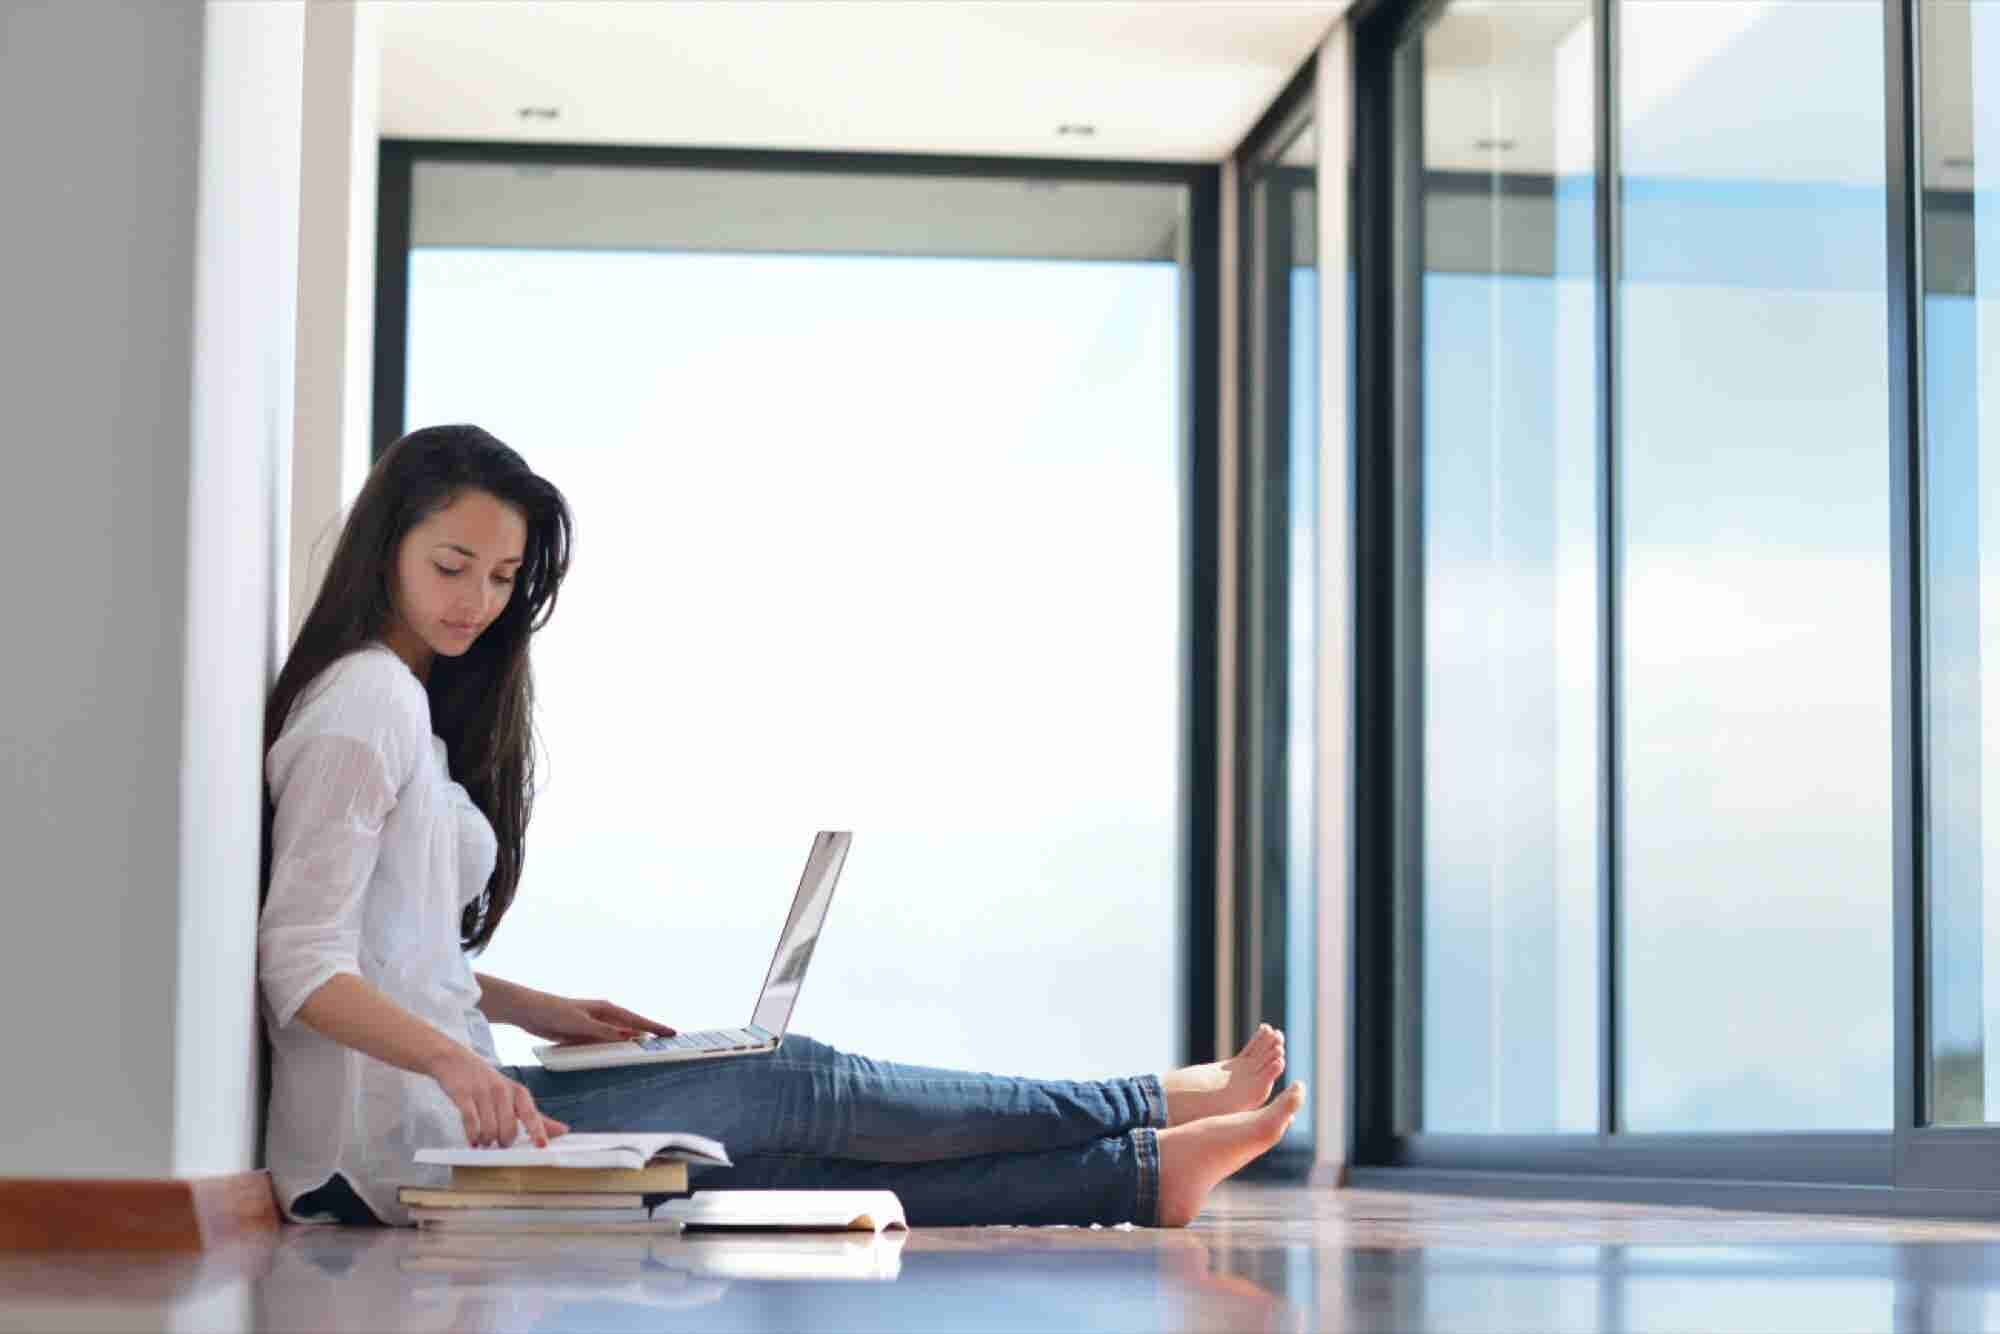 5 Things Women Should Know About Working From Home